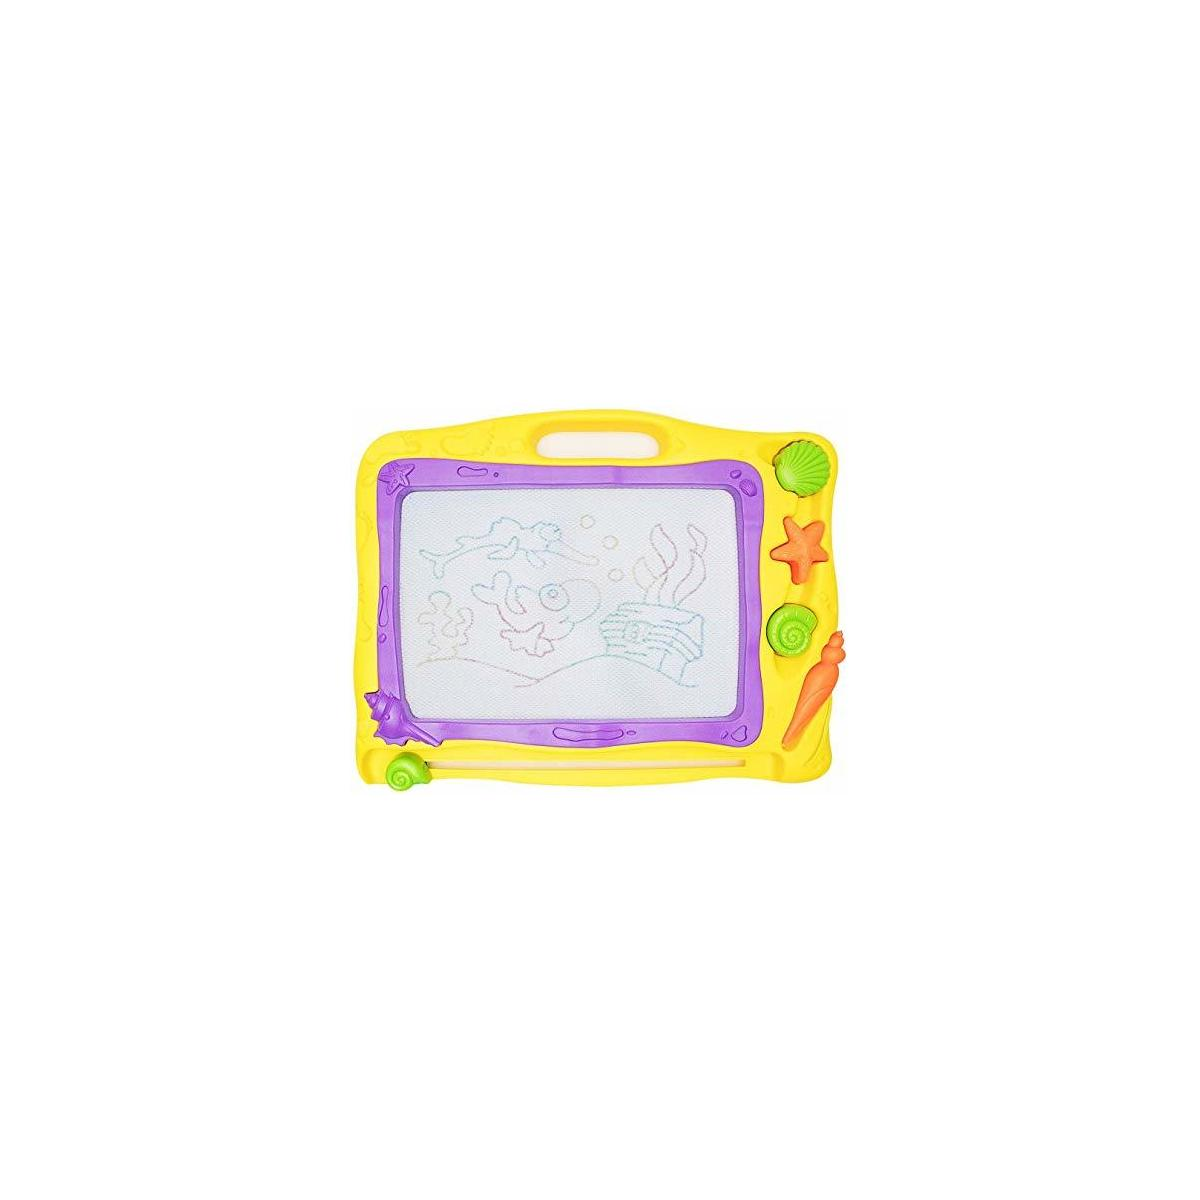 Happytime Kids Colorful Magnetic Drawing Board Large Colorful Erasable Drawing Doodle Writing Sketching Magnetic Board Toys for Kids